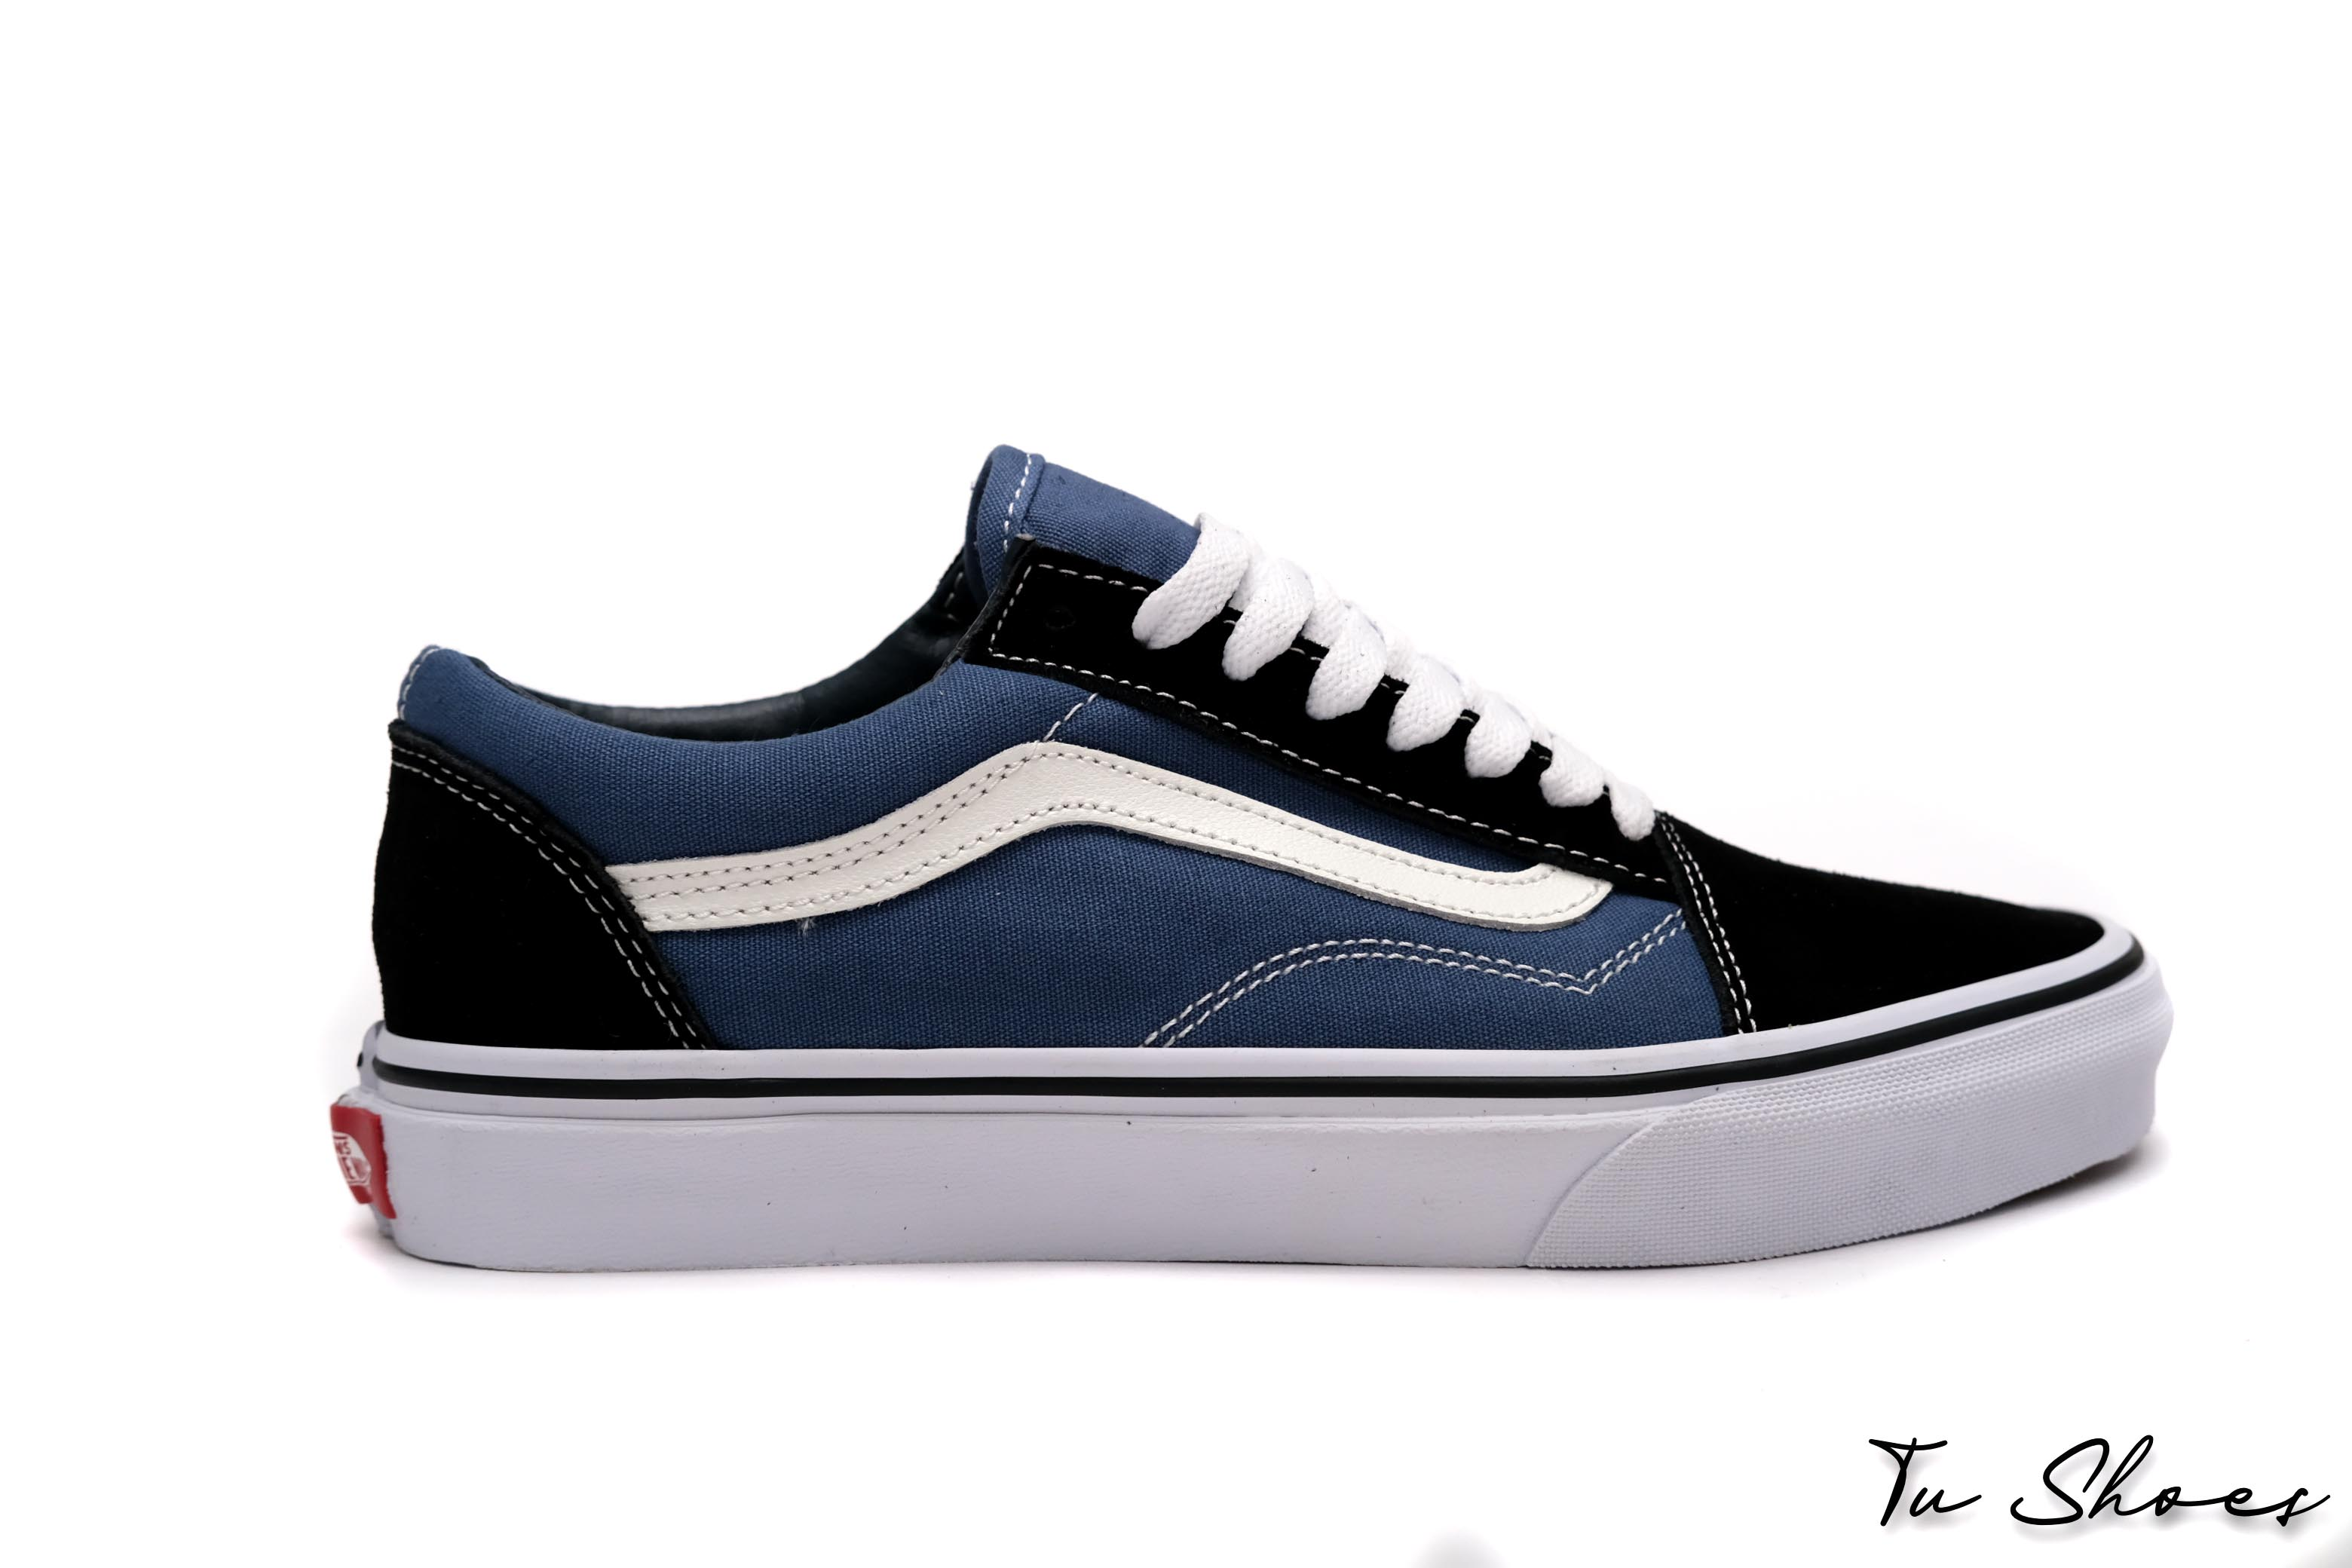 Vans Old Skool Classic Navy